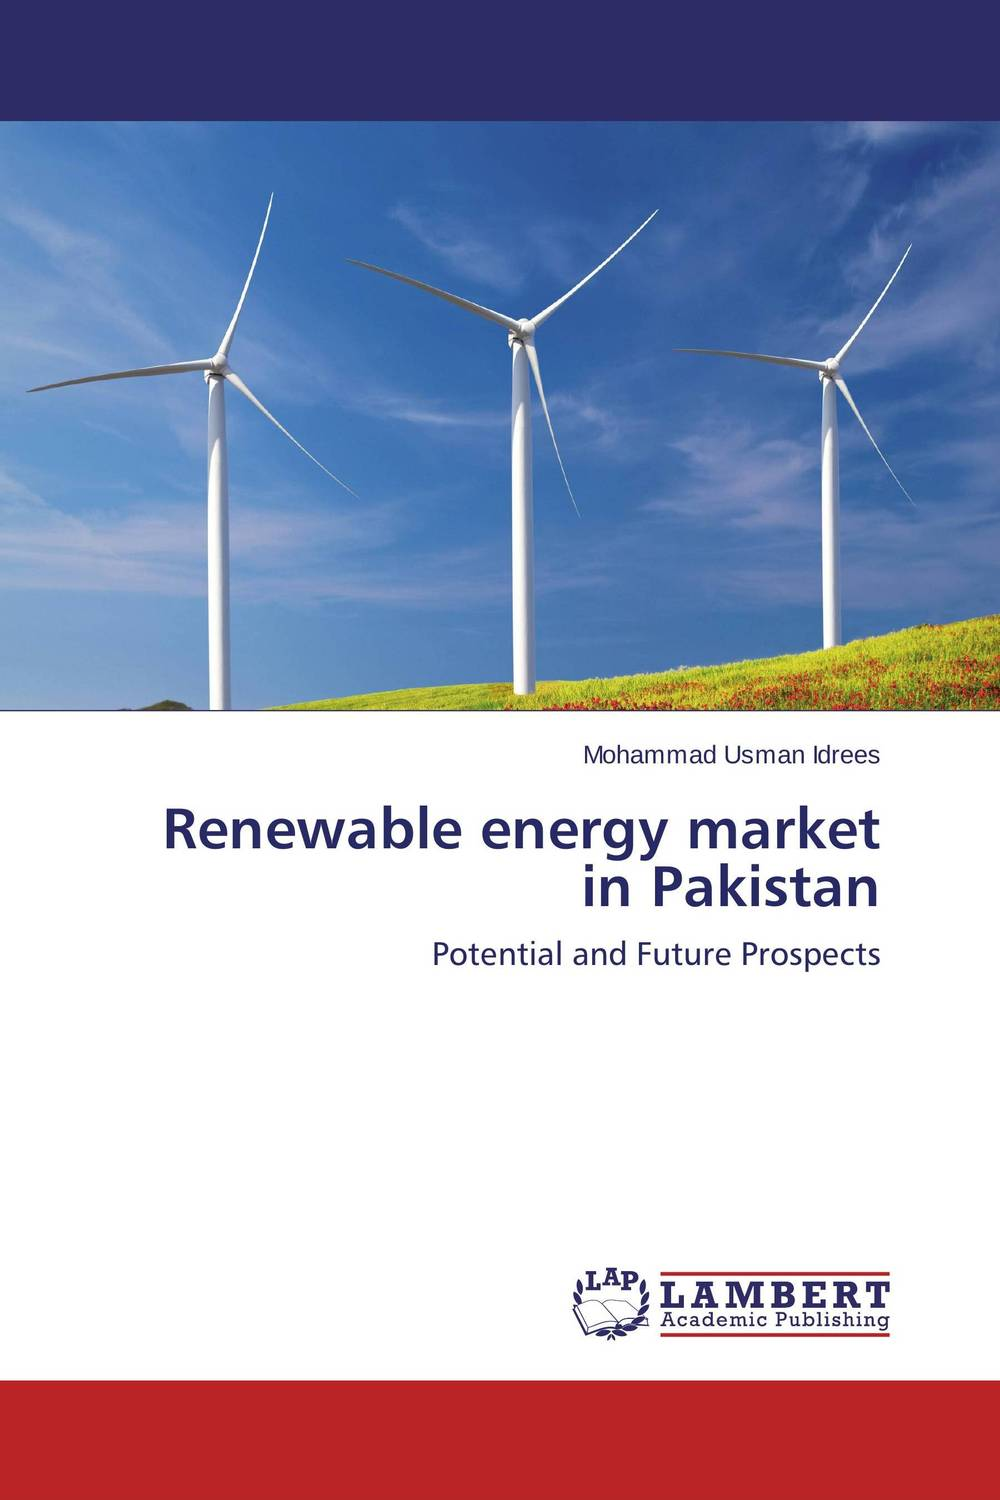 Renewable energy market in Pakistan pakistan on the brink the future of pakistan afghanistan and the west